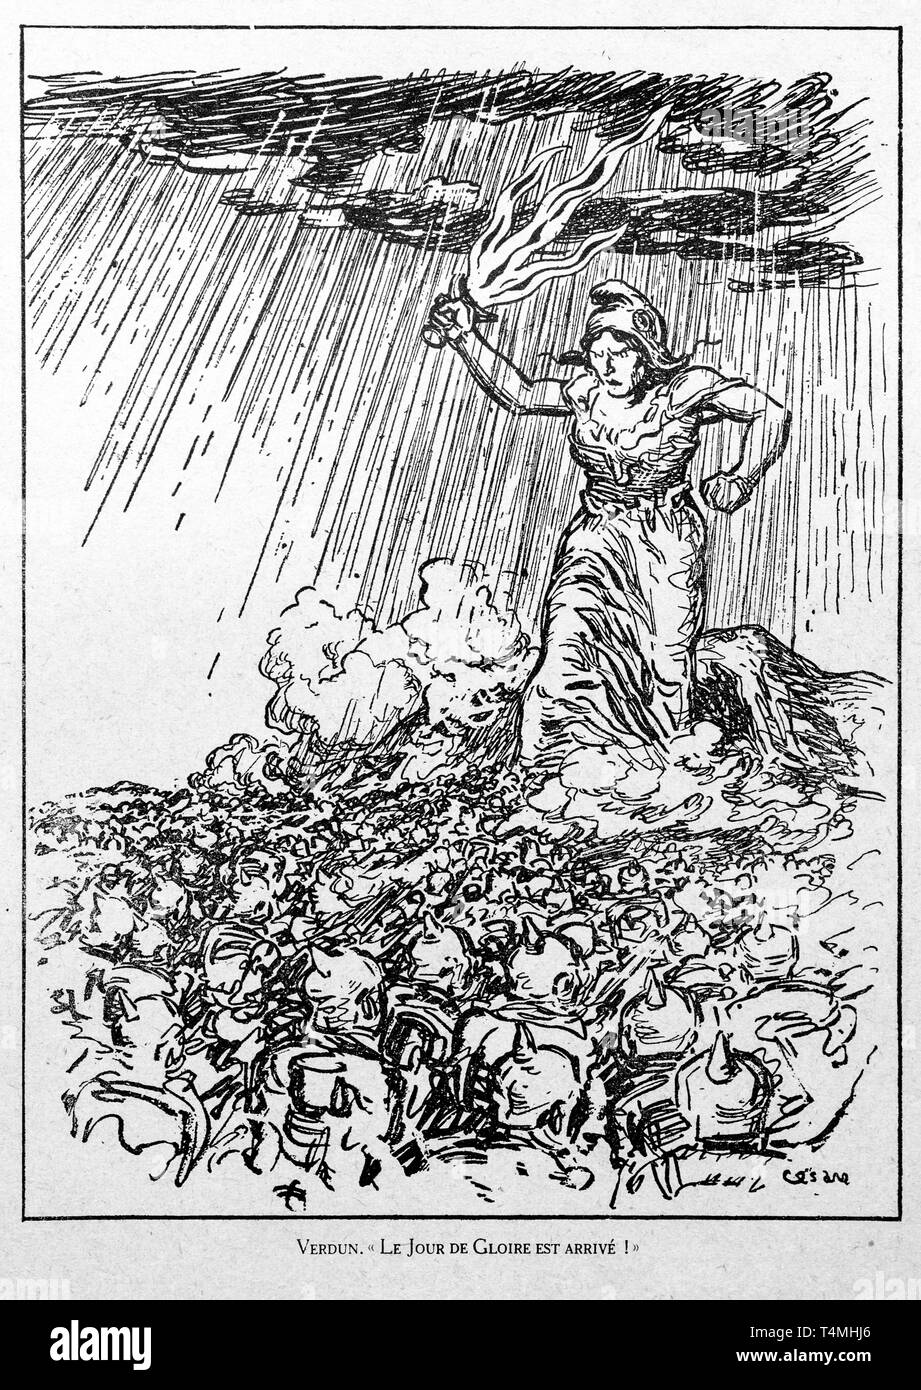 Verdun. Le Jour de Gloire est Arrivé, WW1 caricature by illustrator Cesare showing Marianne, national symbol of the French Republic at the Verdun battlefield - Stock Image